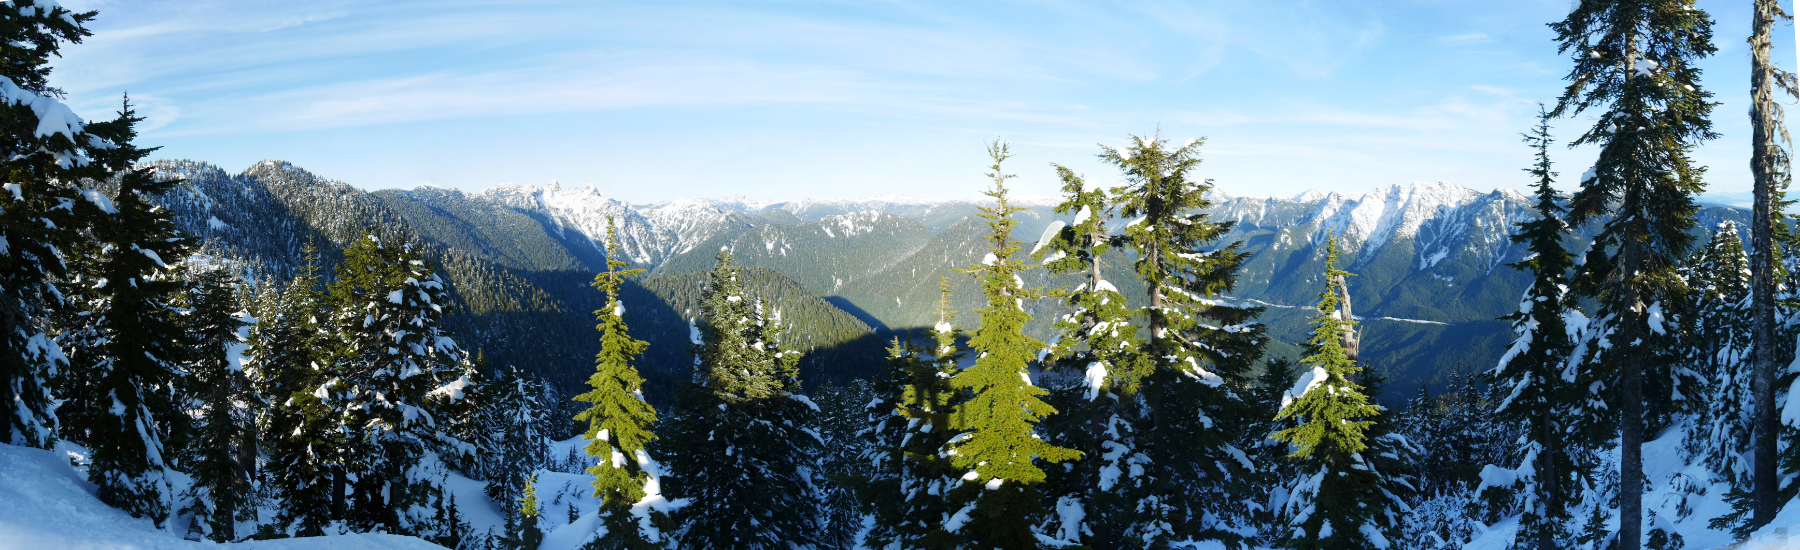 Best Panorama Hollyburn Mountain